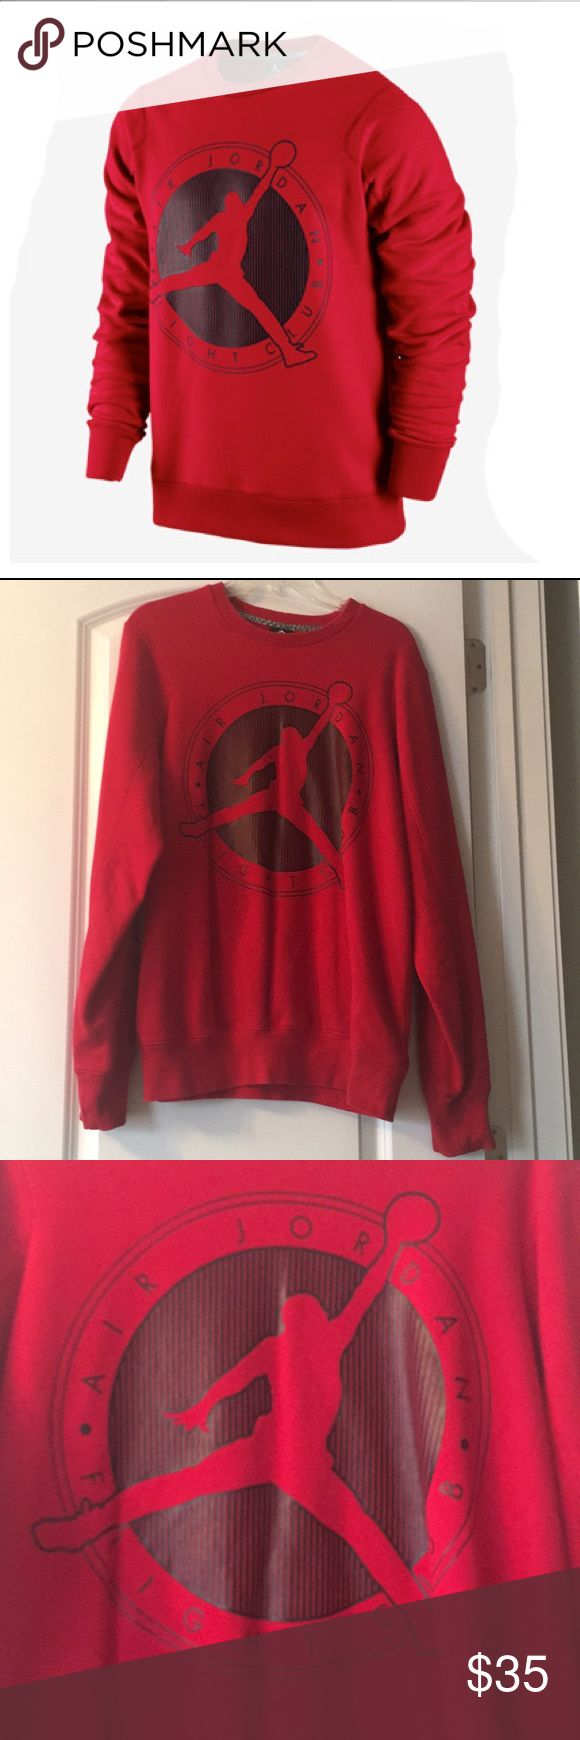 Red Jordan Crew Neck Sweatshirt Red Jordan Flight Club crew neck sweatshirt is in excellent condition. Has Jordan logo on the back. Jordan Shirts Sweatshirts & Hoodies